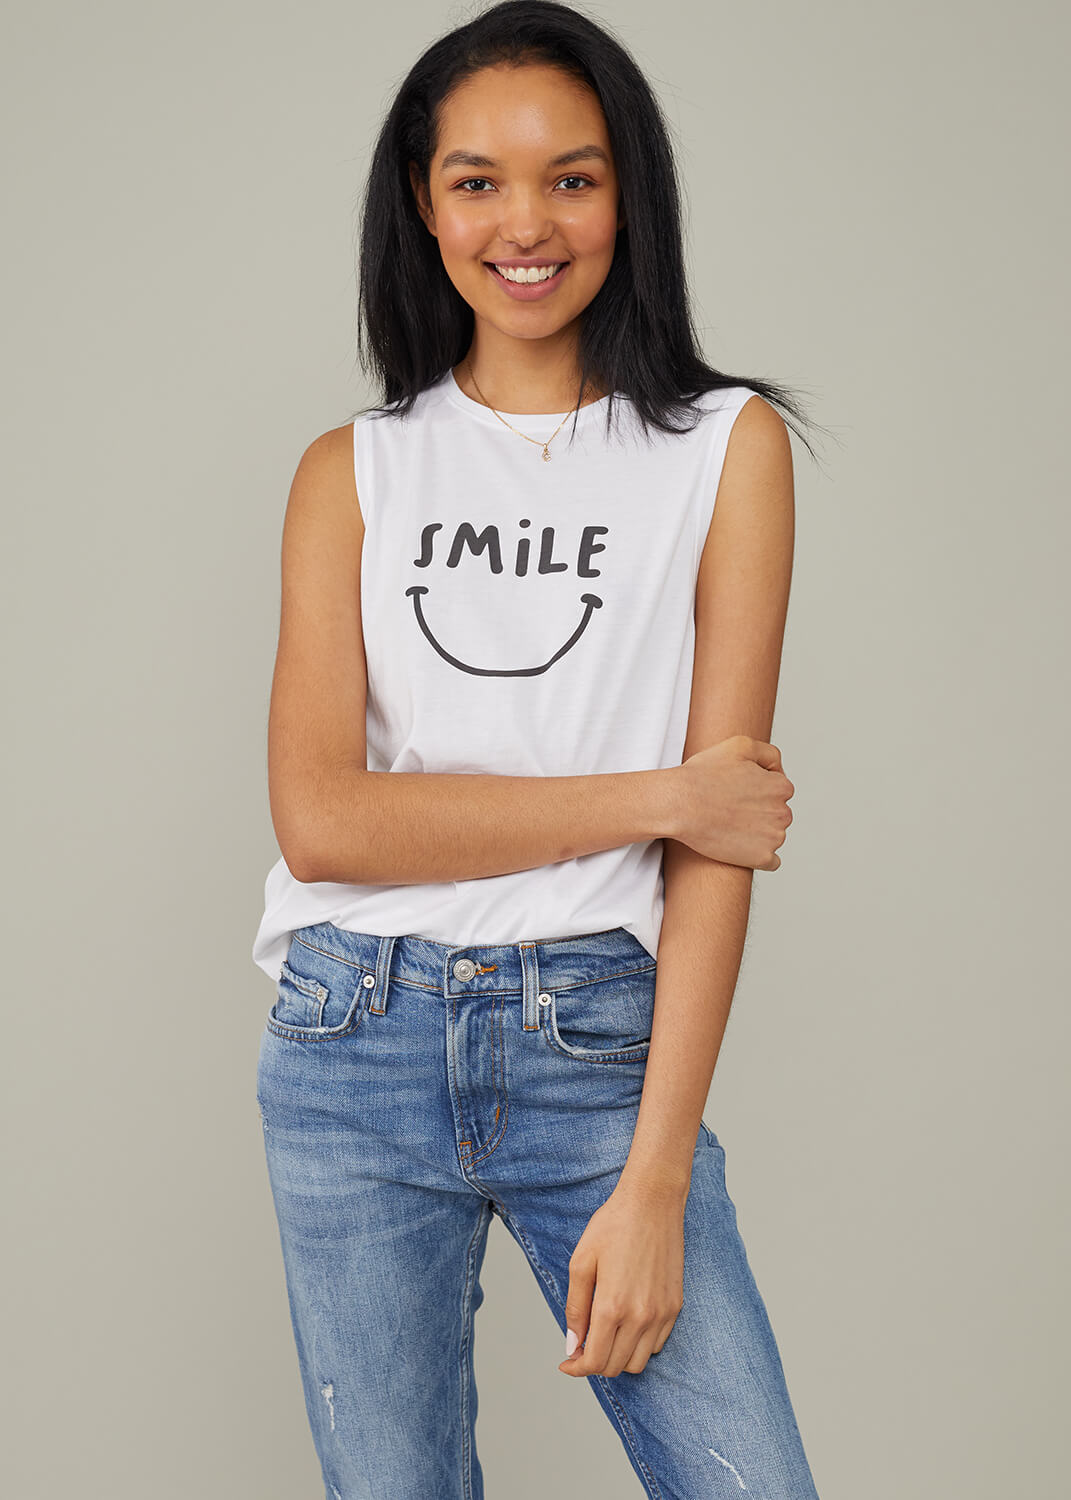 Whitney - Muscle Tee - Smile - White